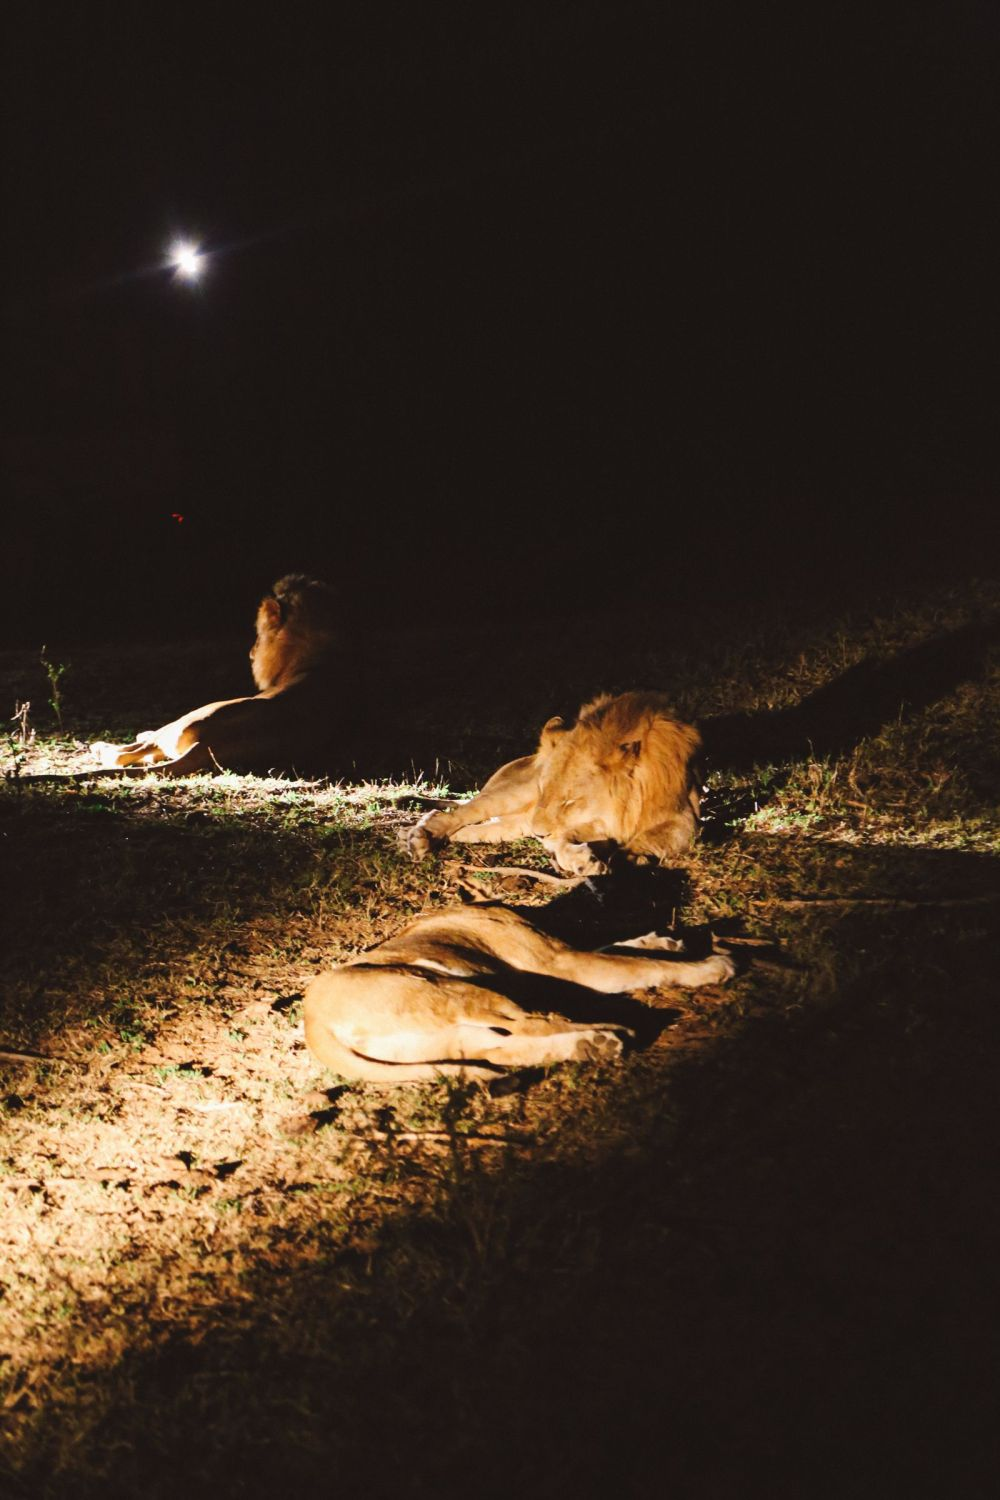 Midnight Lions, Skittish Giraffes And The Deadliest Of The Safari Big 5 In South Africa (57)